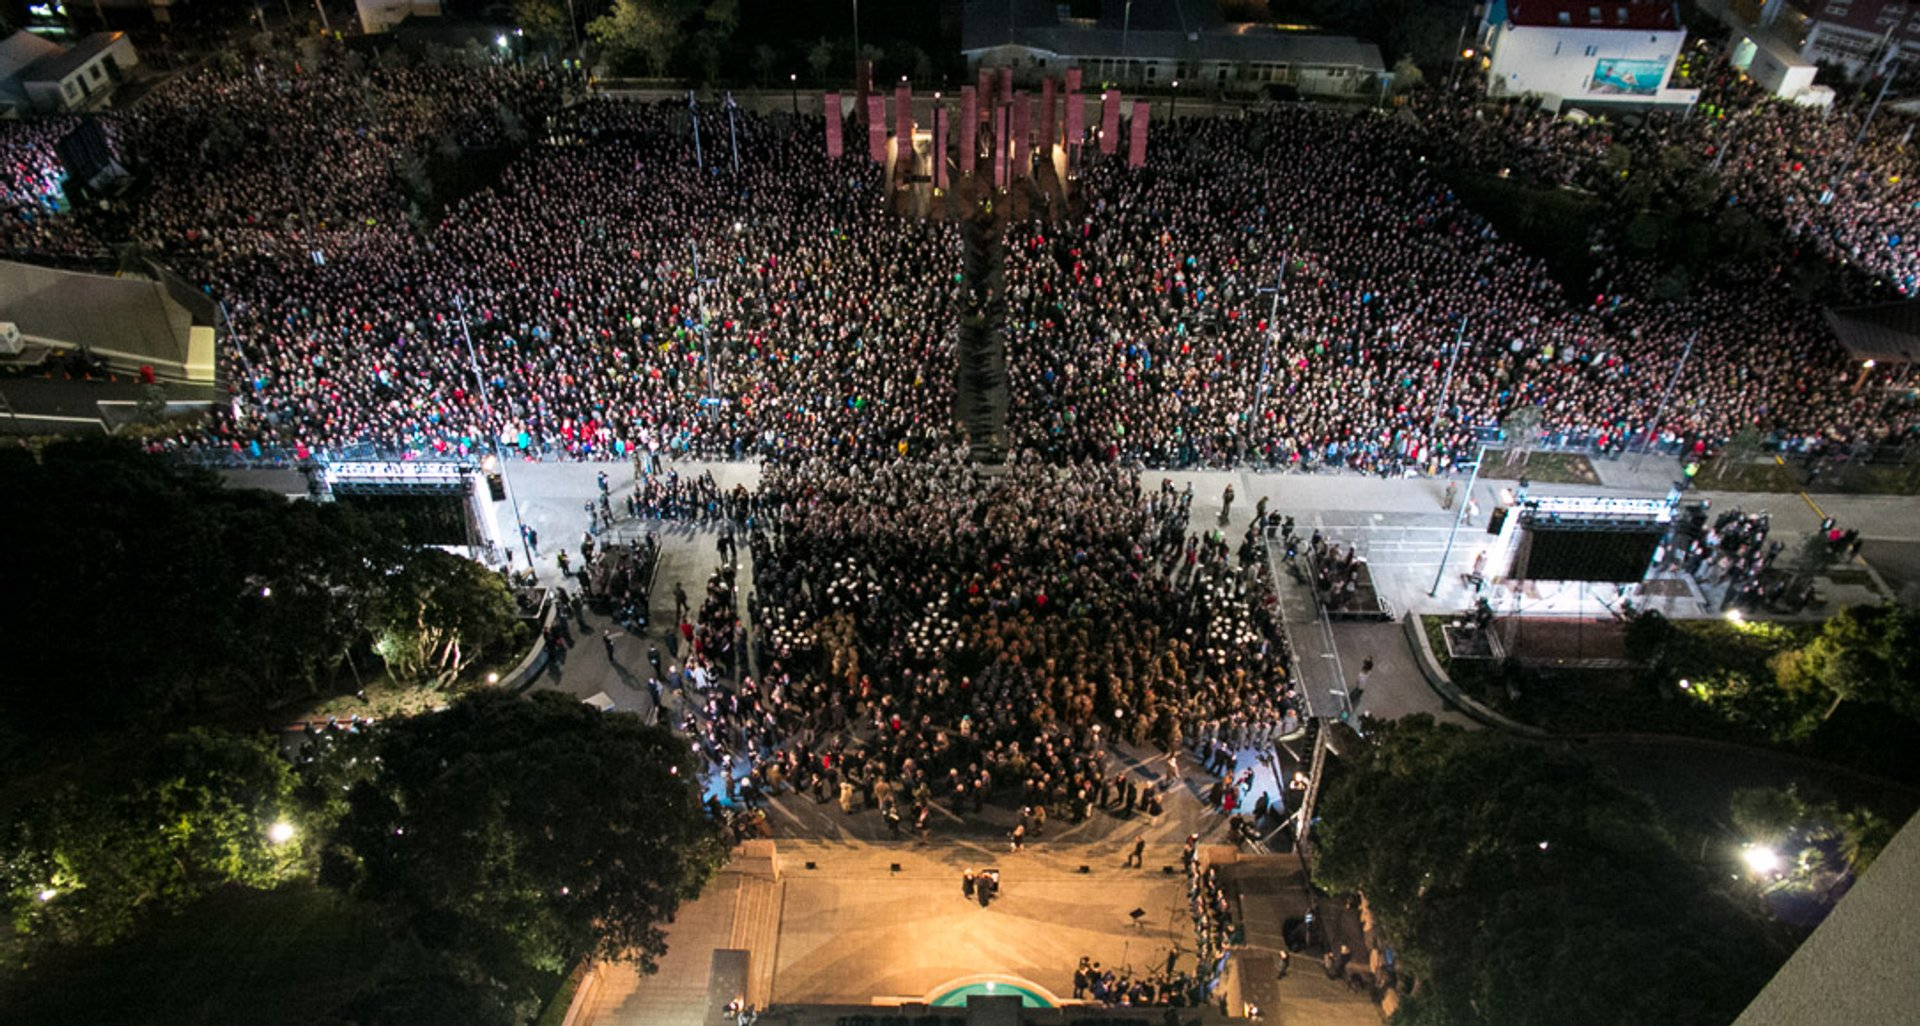 View of the 50,000 crowd that attended the Dawn Service 2020